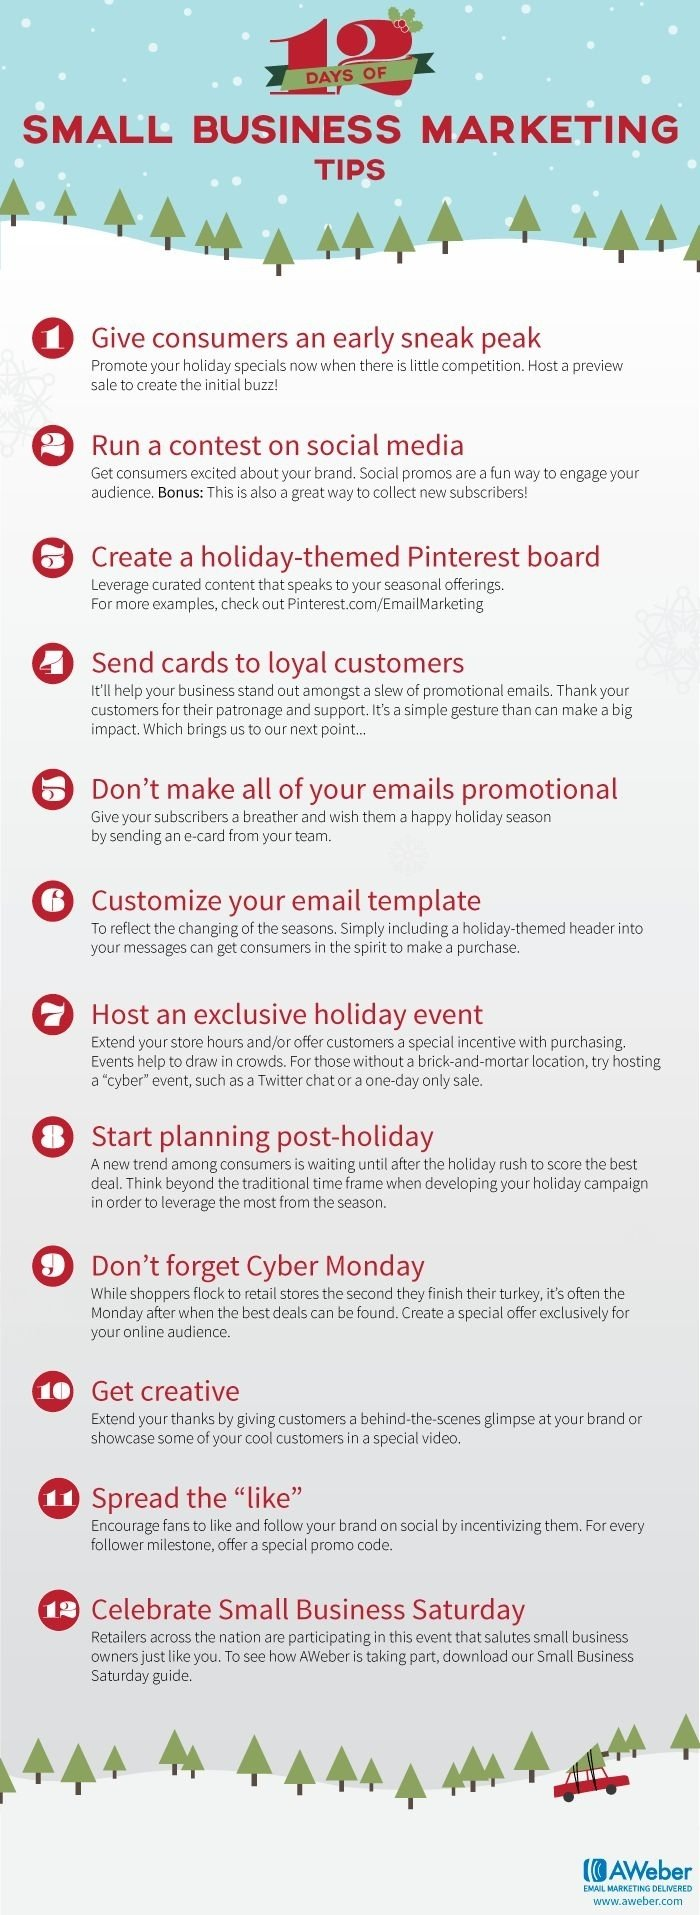 10 Gorgeous Marketing Ideas For Small Business les 20 meilleures images du tableau clinic ideas sur pinterest 2021